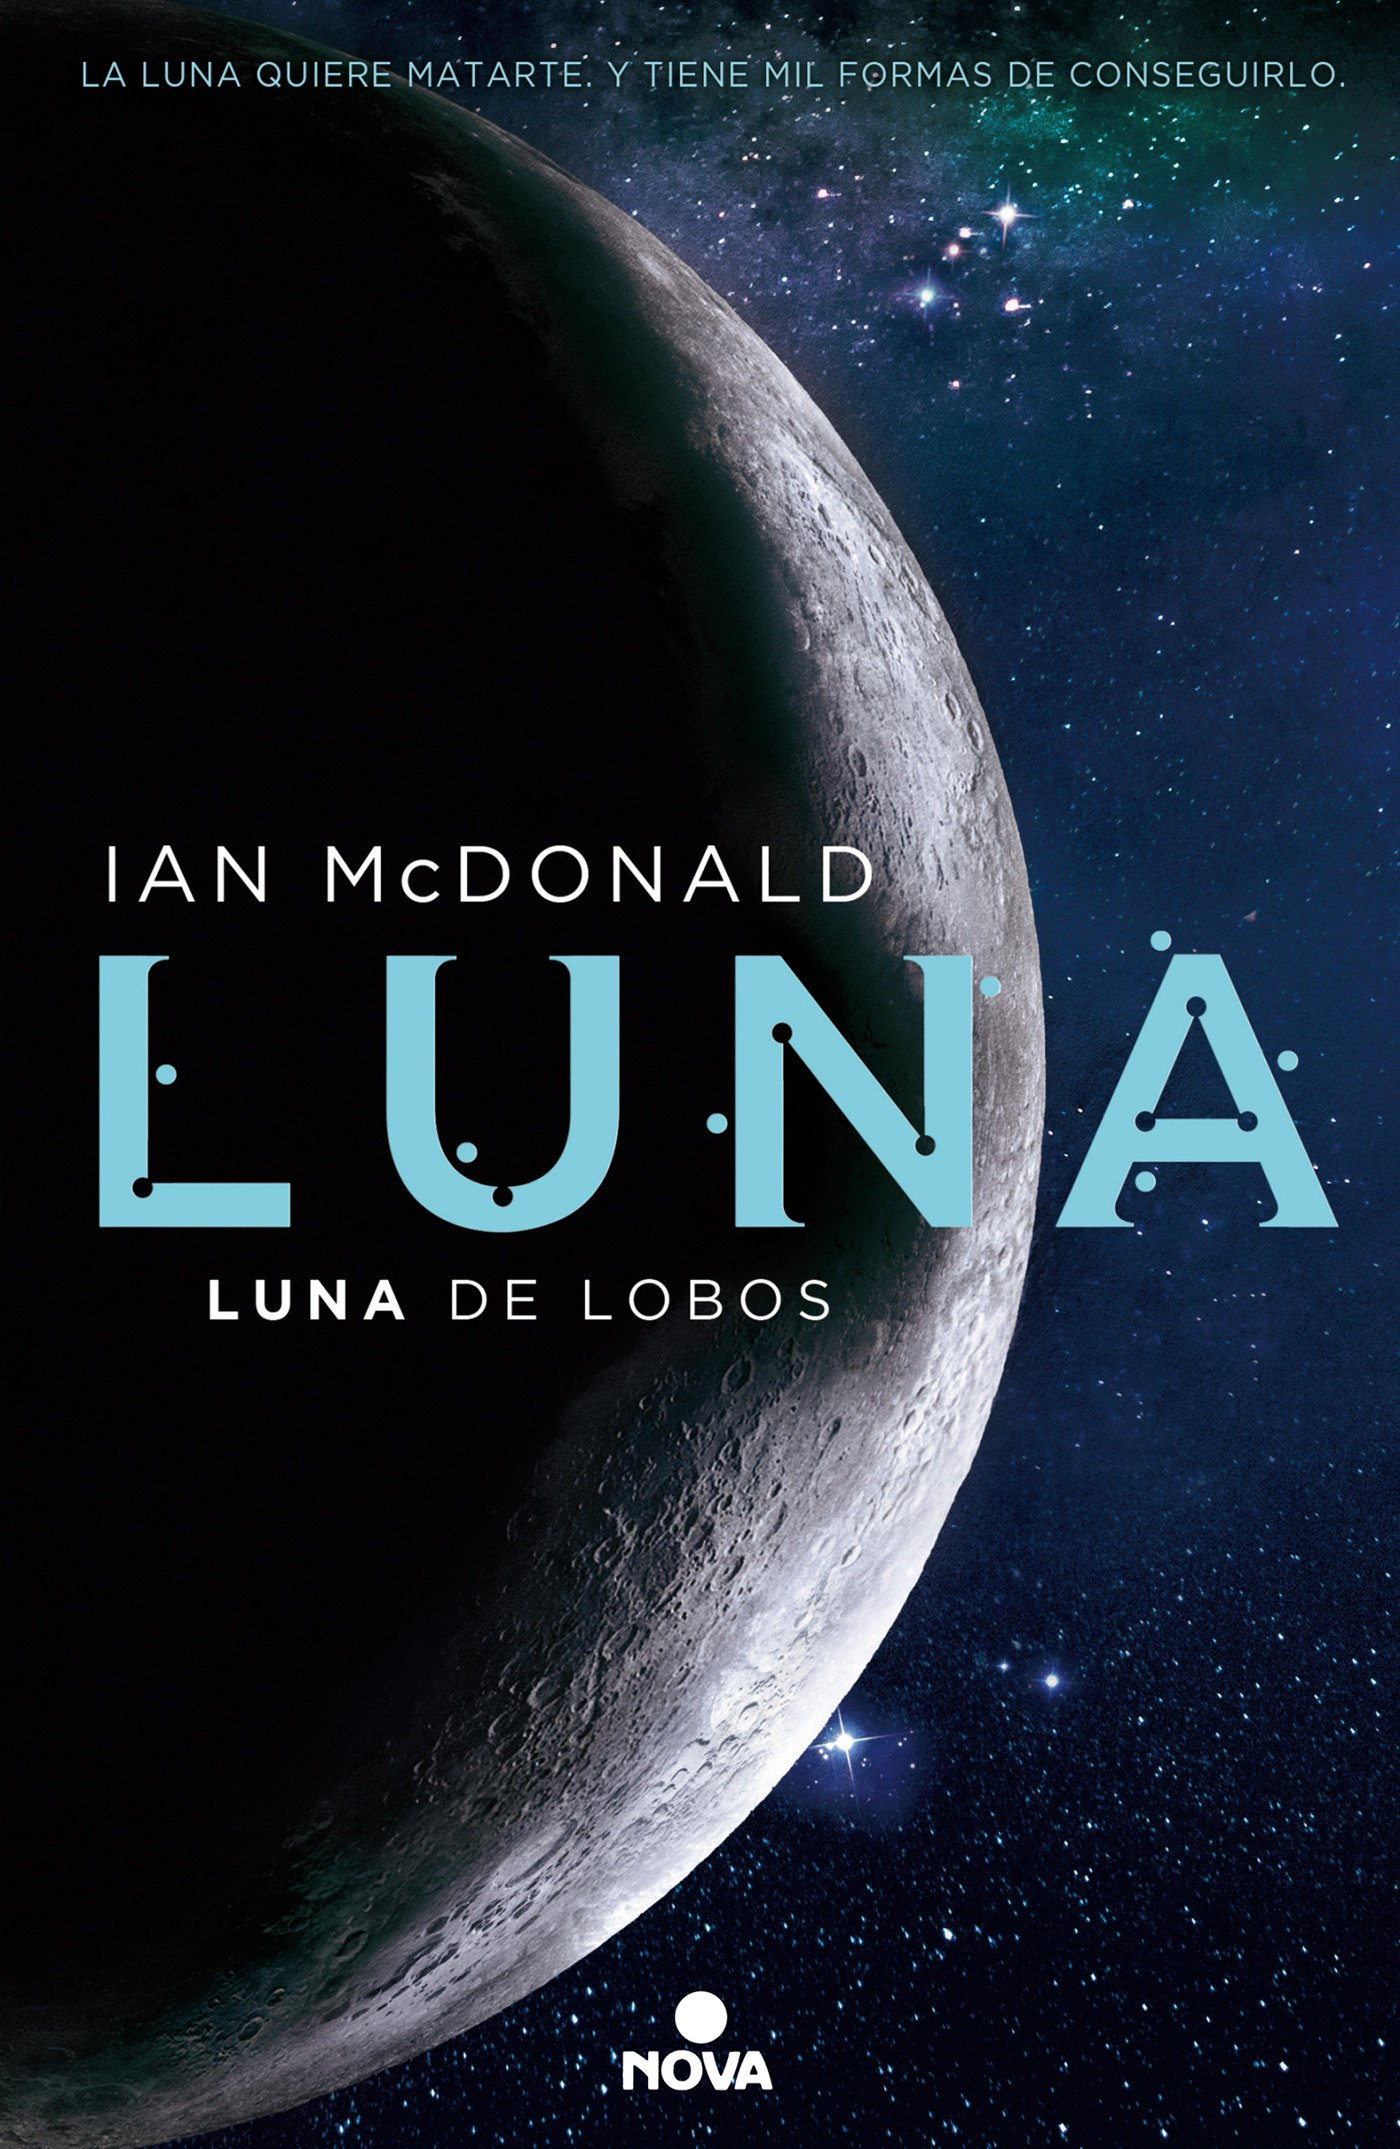 Luna de lobos (Trilogía Luna 2) (NOVA) Tapa blanda – 3 may 2017 Ian McDonald 8466660909 Lunar bases; Fiction. Space colonies; Fiction.